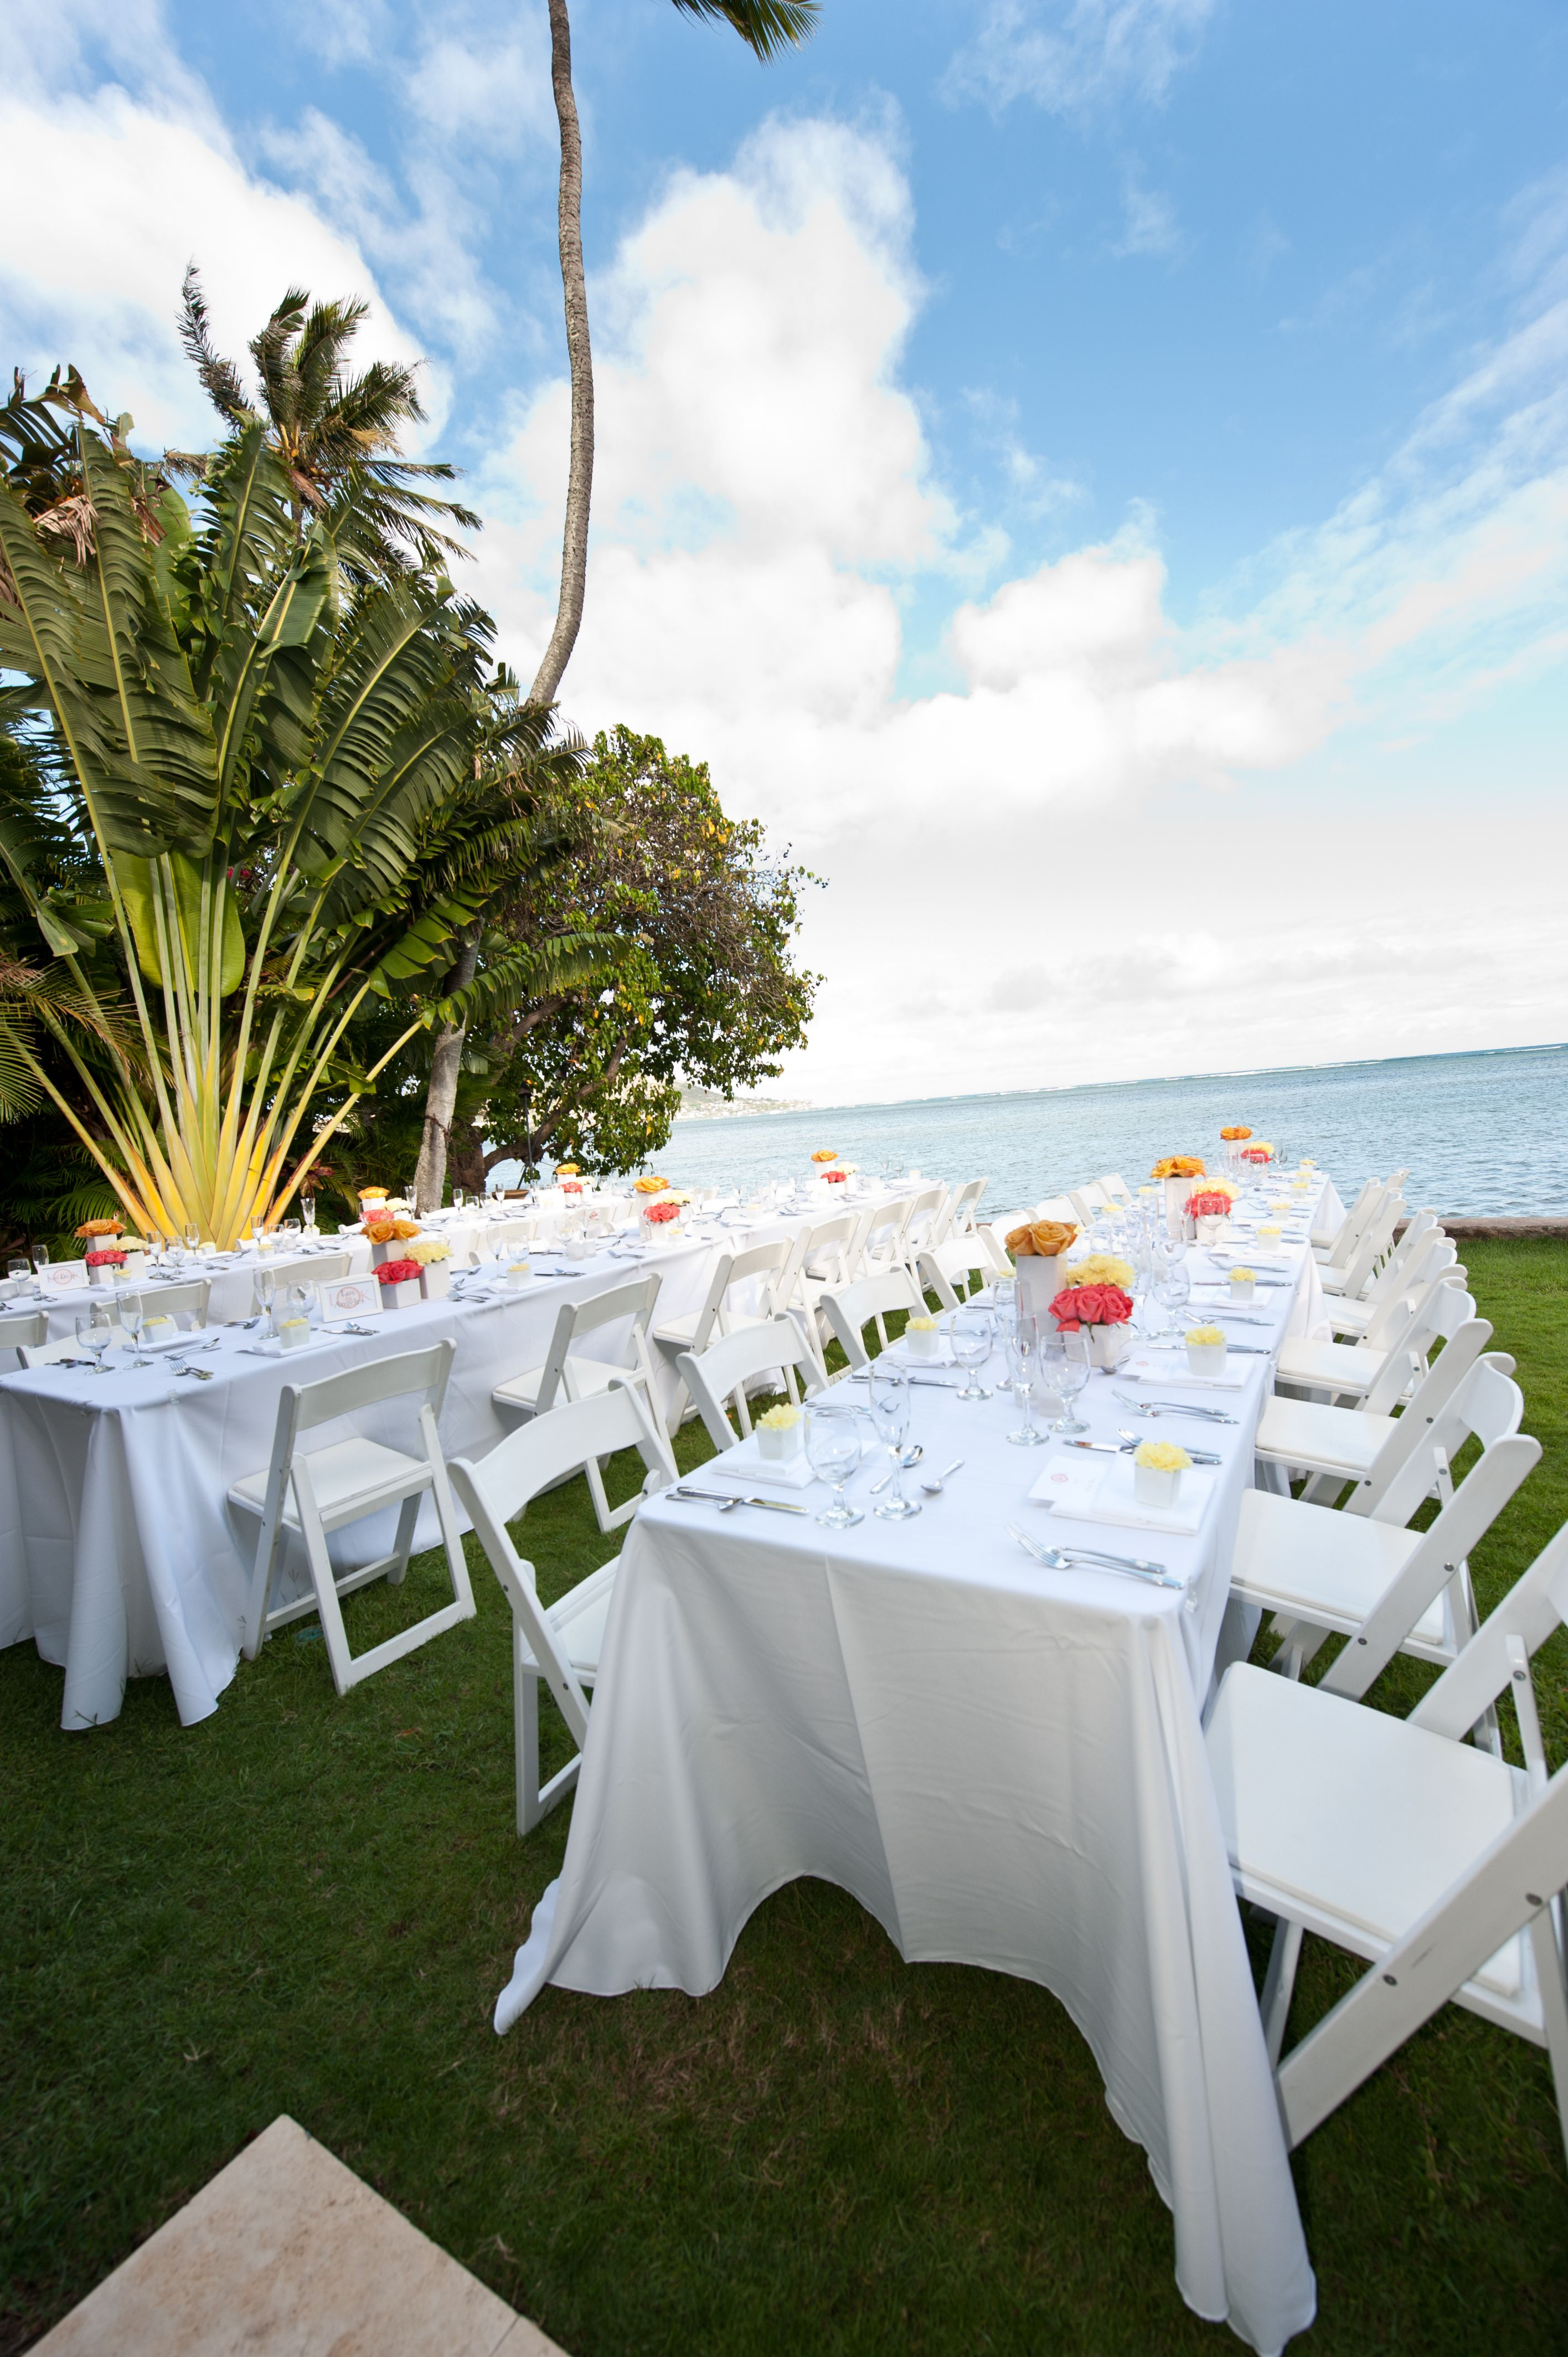 Black folding chairs wedding - Rectangle Banquet Tables And White Resin Chairs We Have White Resin Chairs